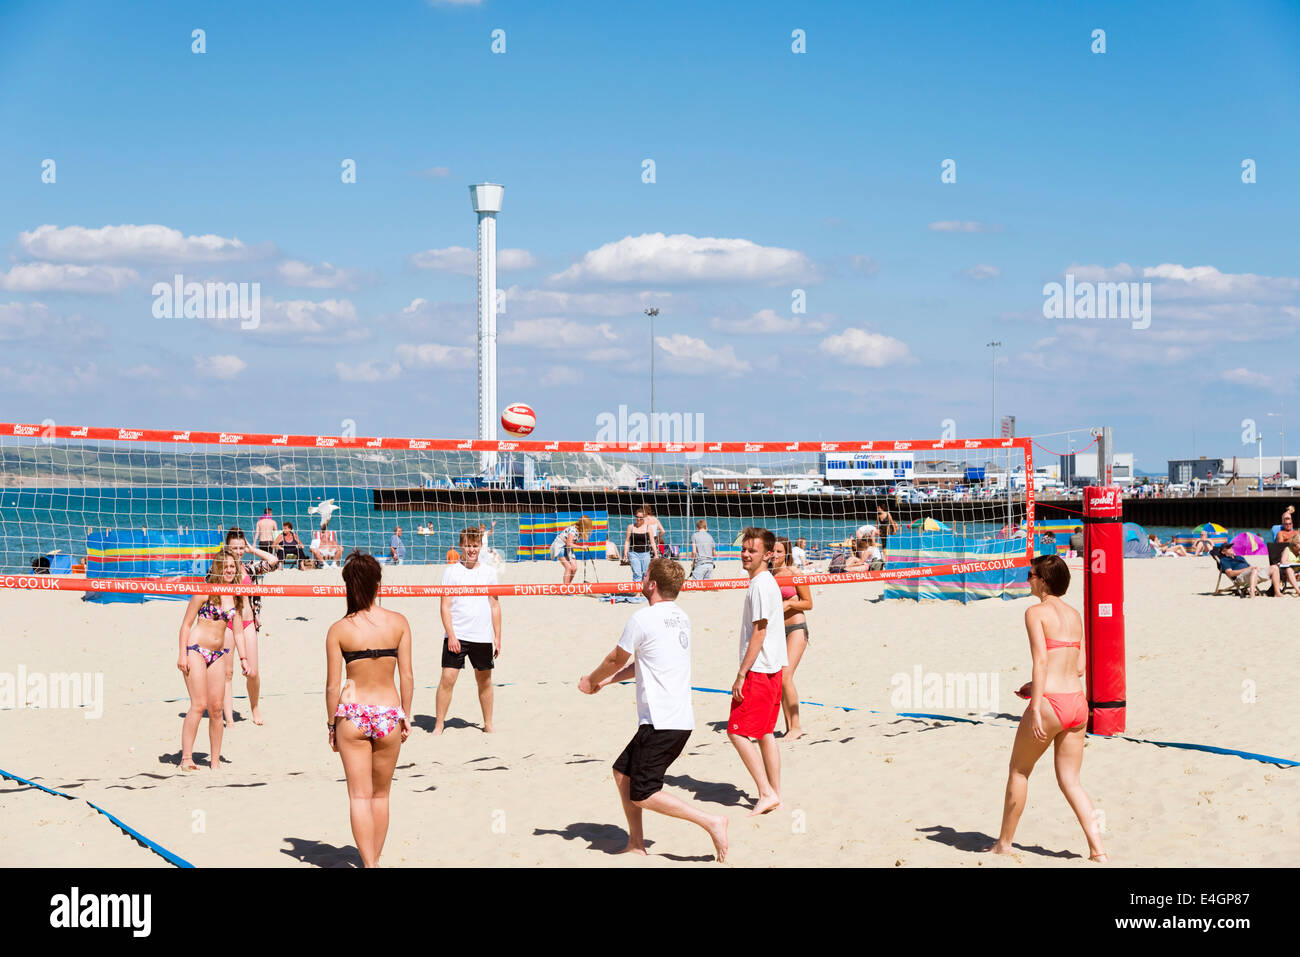 Les gens à jouer au volleyball de plage de Weymouth, Dorset, UK. Photo Stock